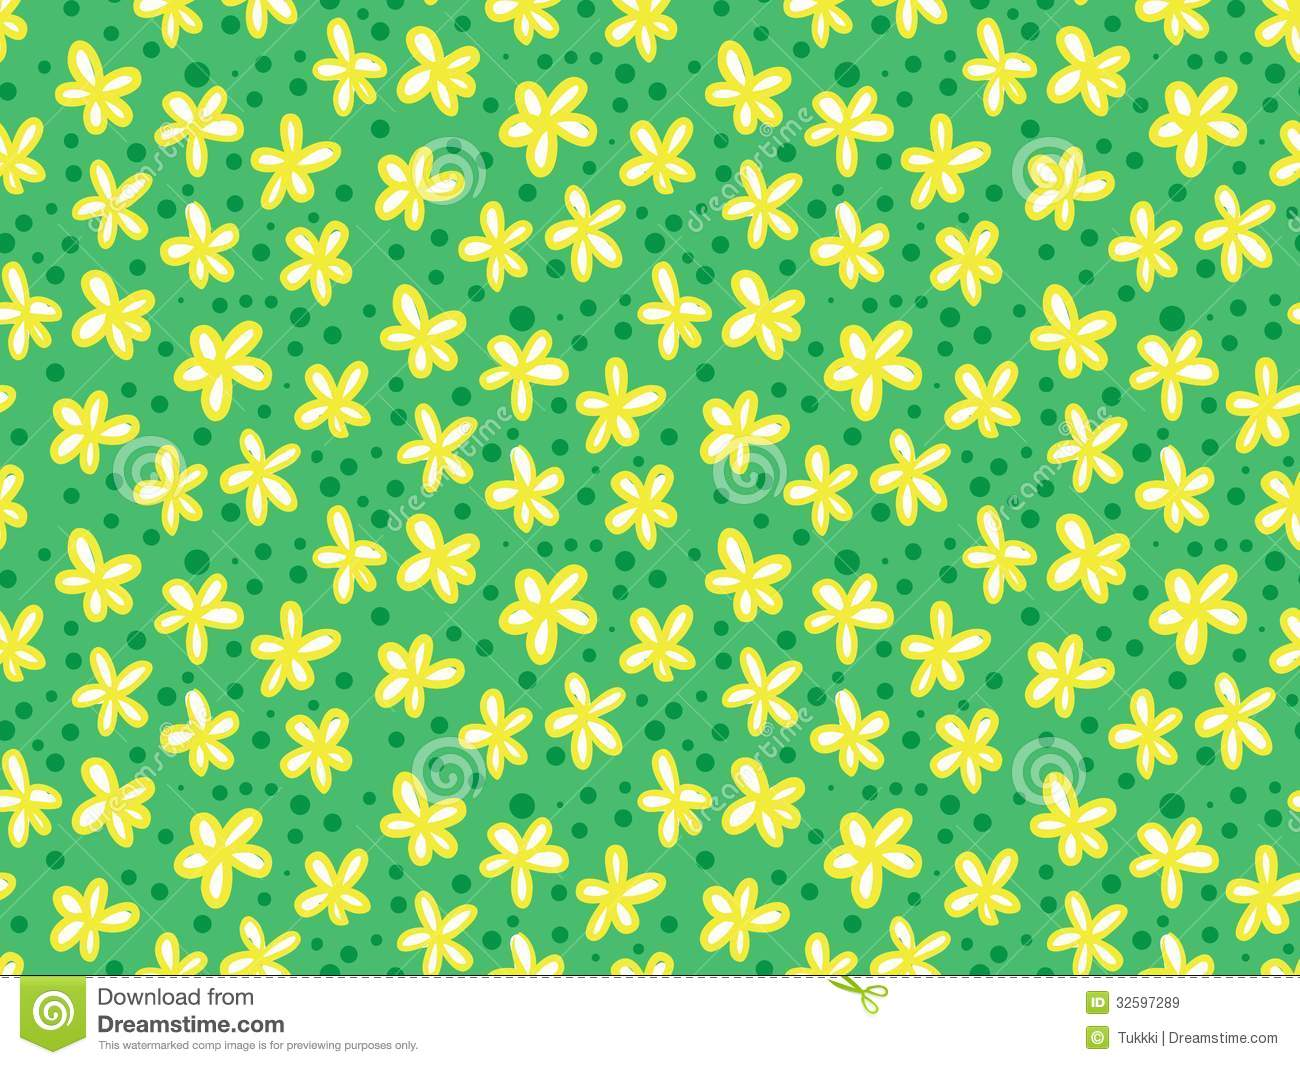 Grunge Pattern With Small Flowers And Leafs. Royalty Free